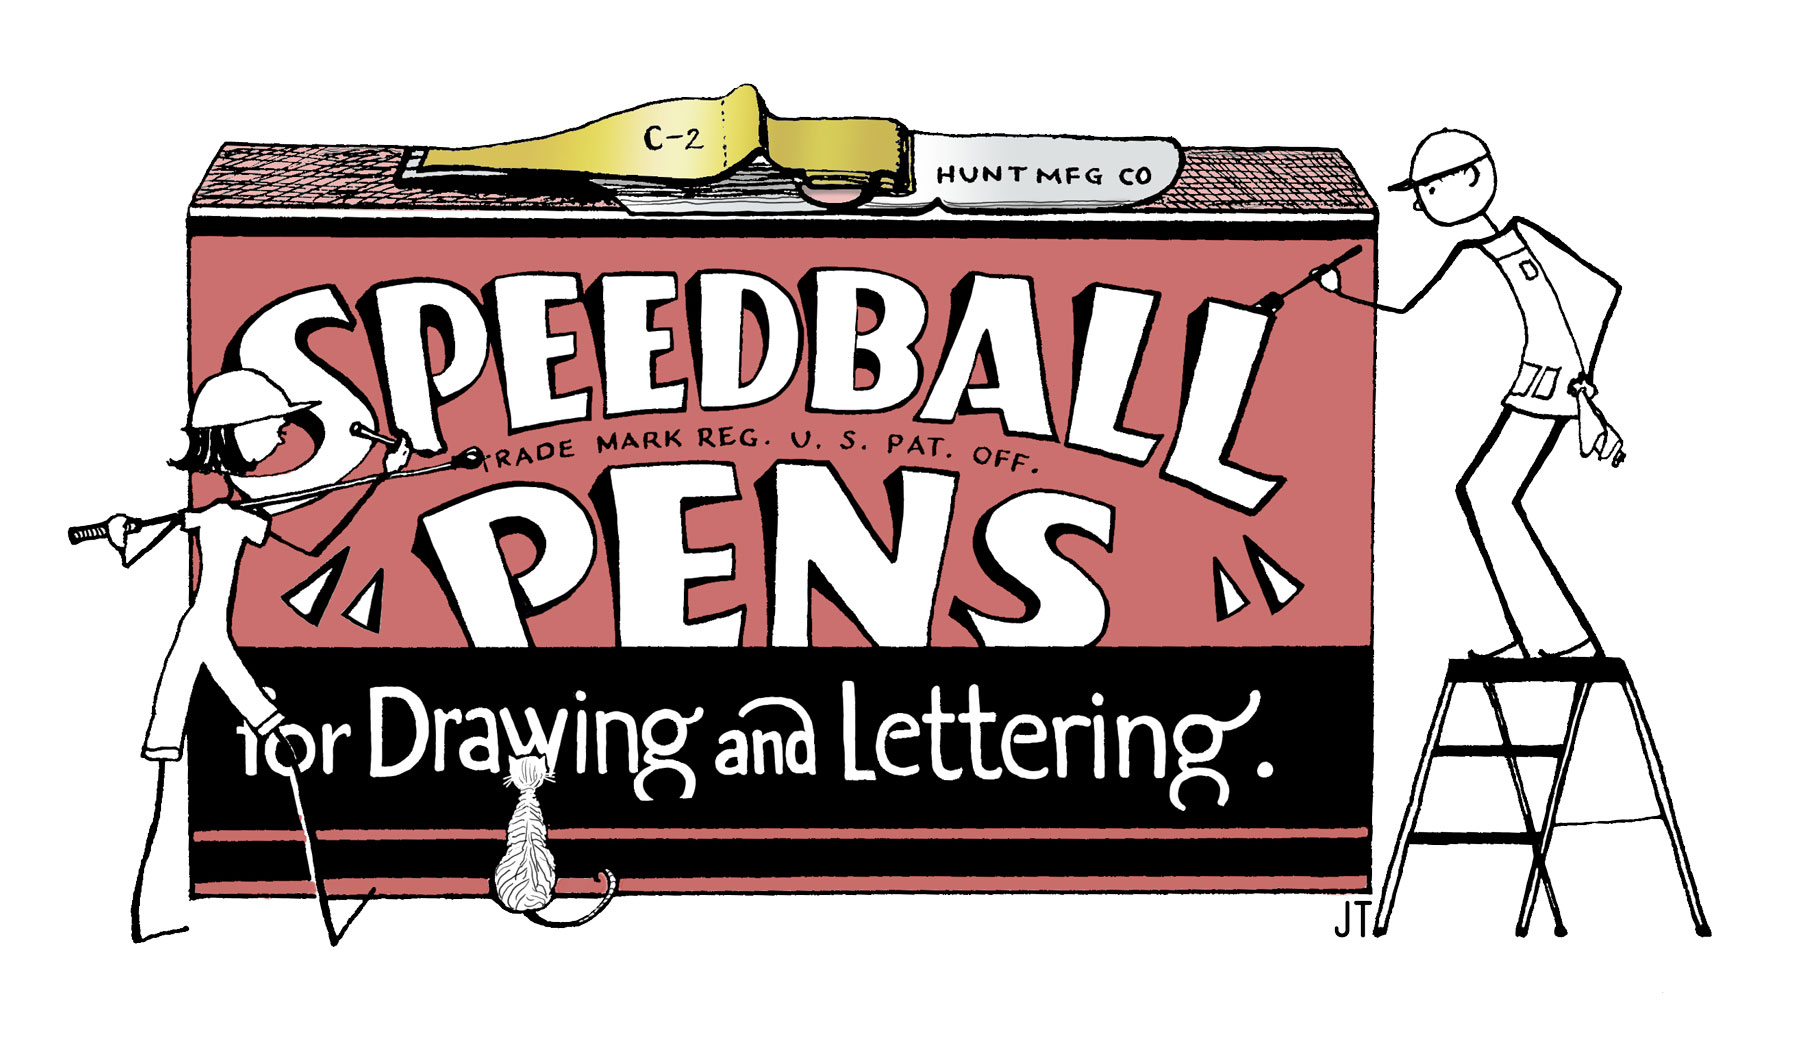 Speedball Pen Box by Janet Takahashi